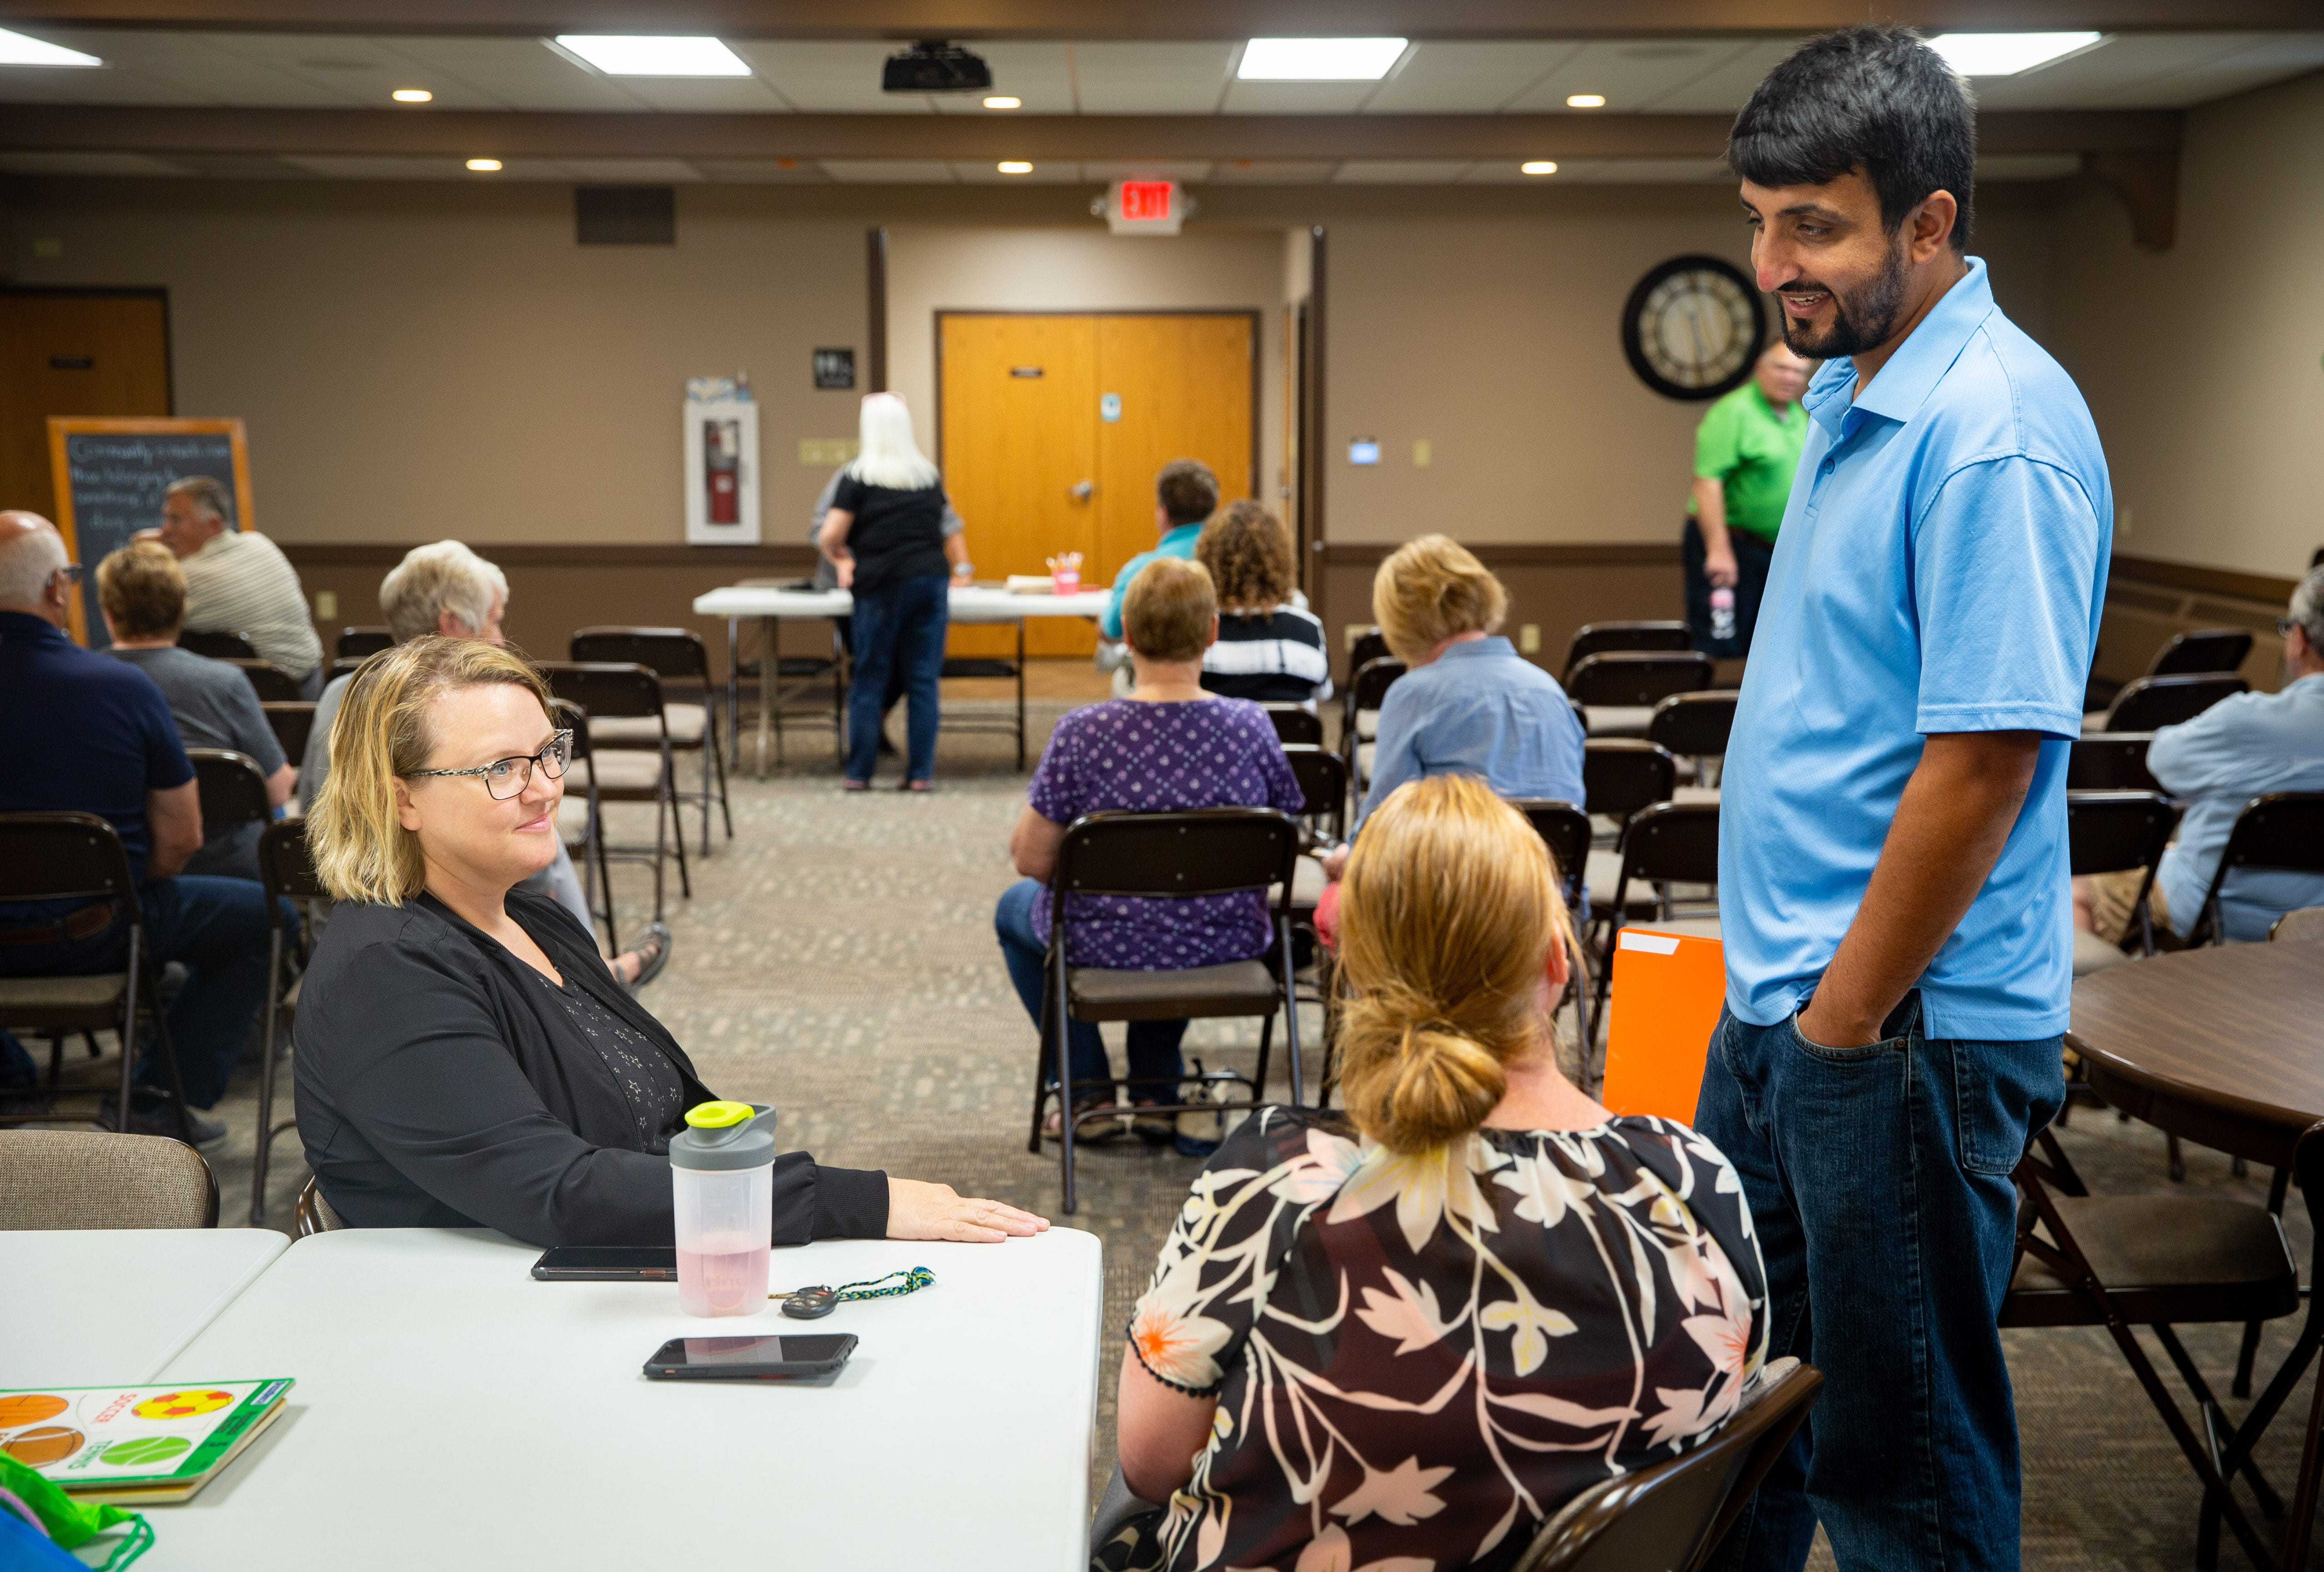 Zalmay Niazy chats with friends at the First United Methodist Church in Iowa Falls, Tuesday, June 22, 2021. Born and raised in Afghanistan, Niazy worked as a translator for U.S. armed forces.